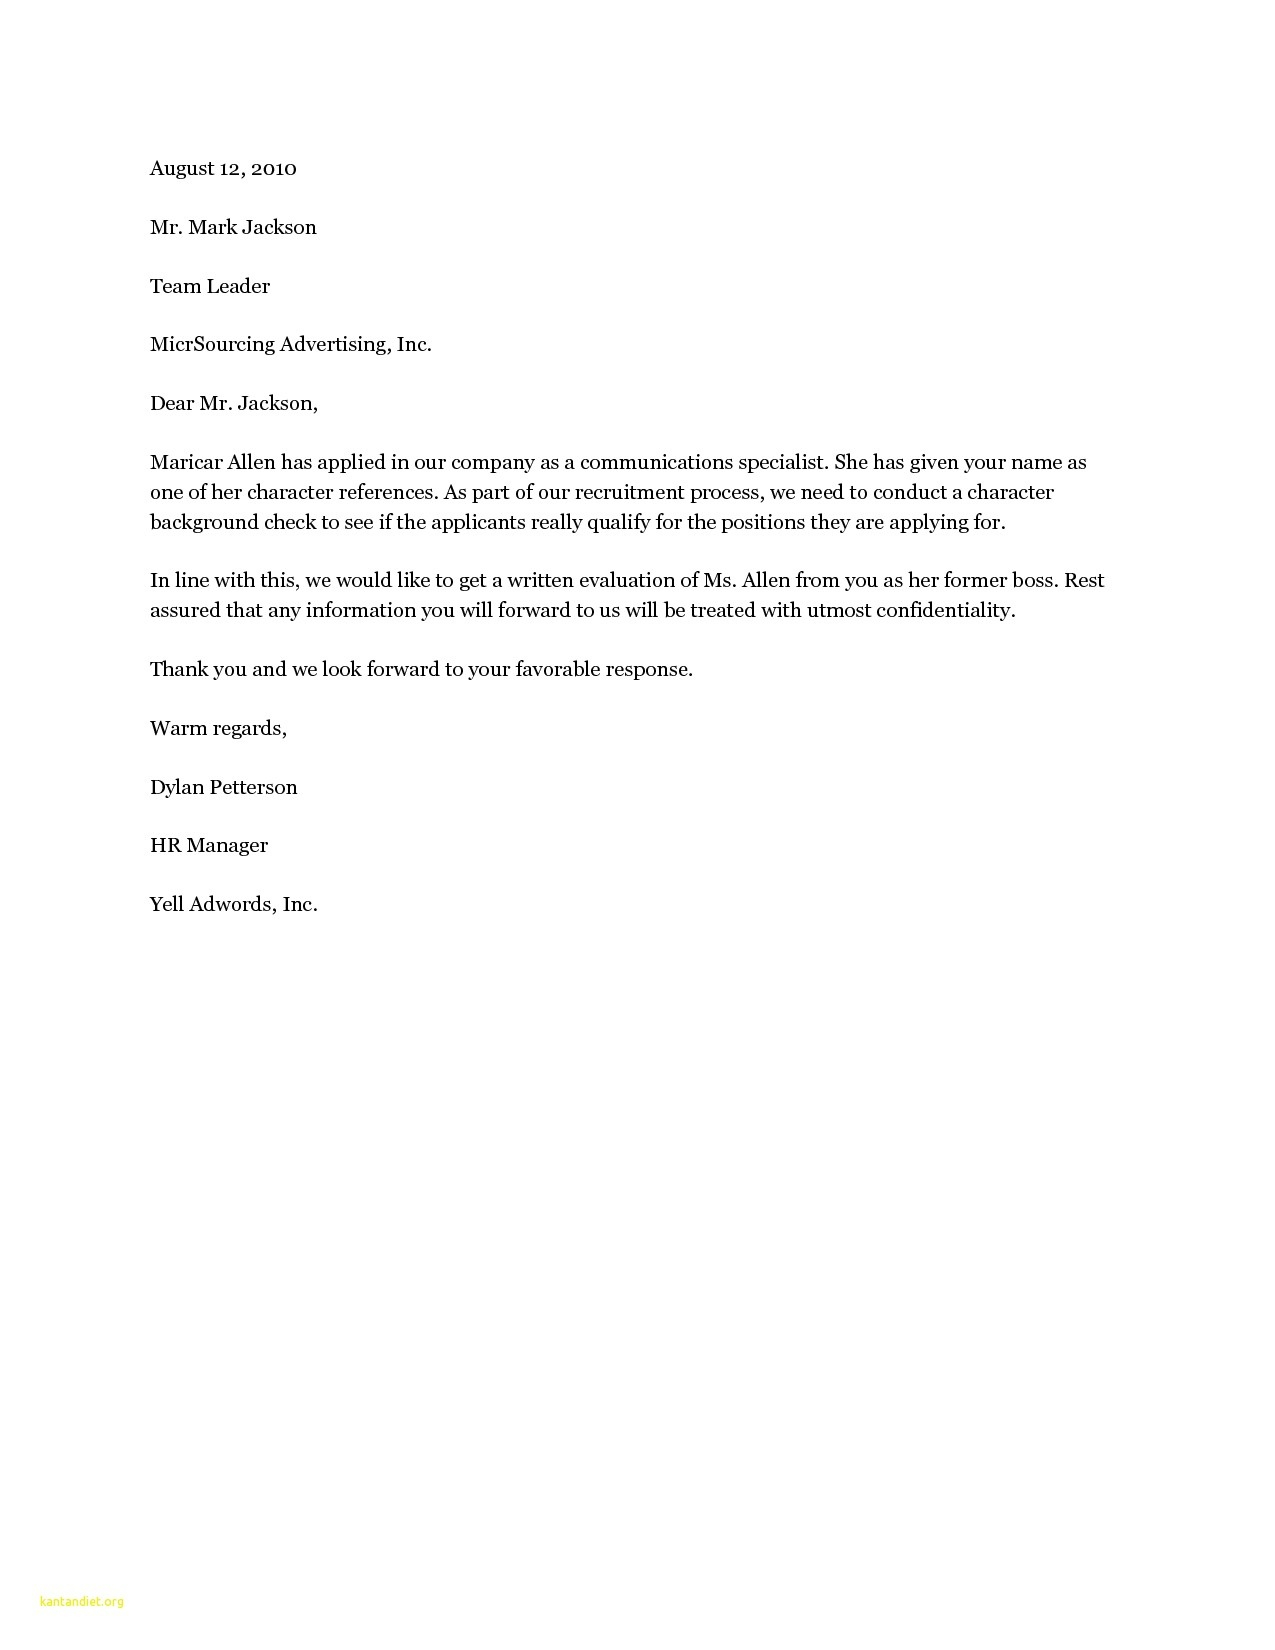 Character Reference Letter Template Examples